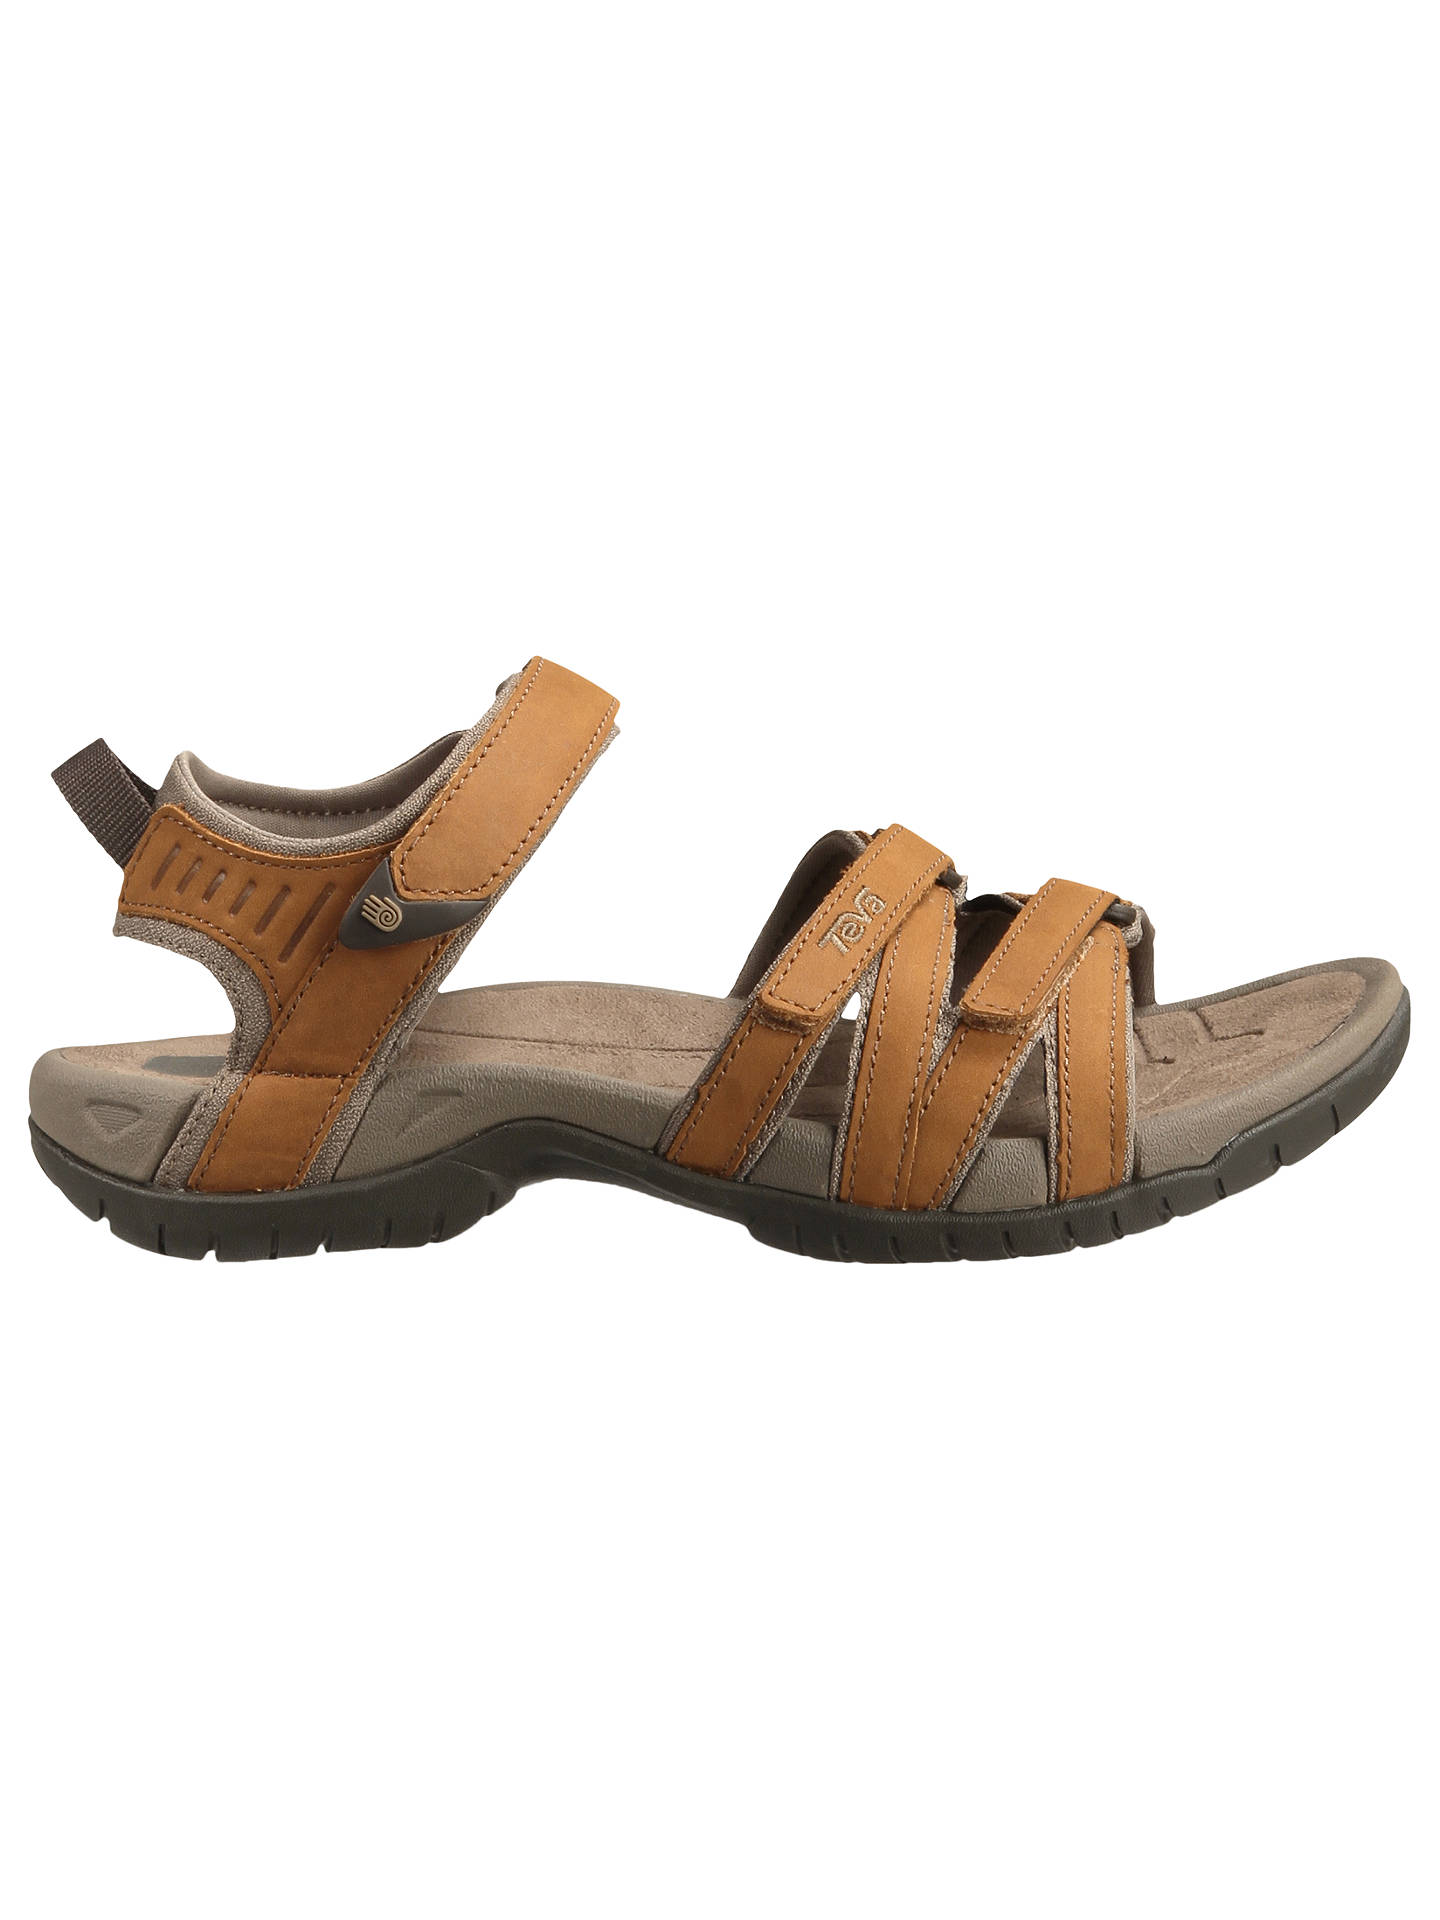 79b39d25d187 Buy Teva Women s Tirra Leather Sandals